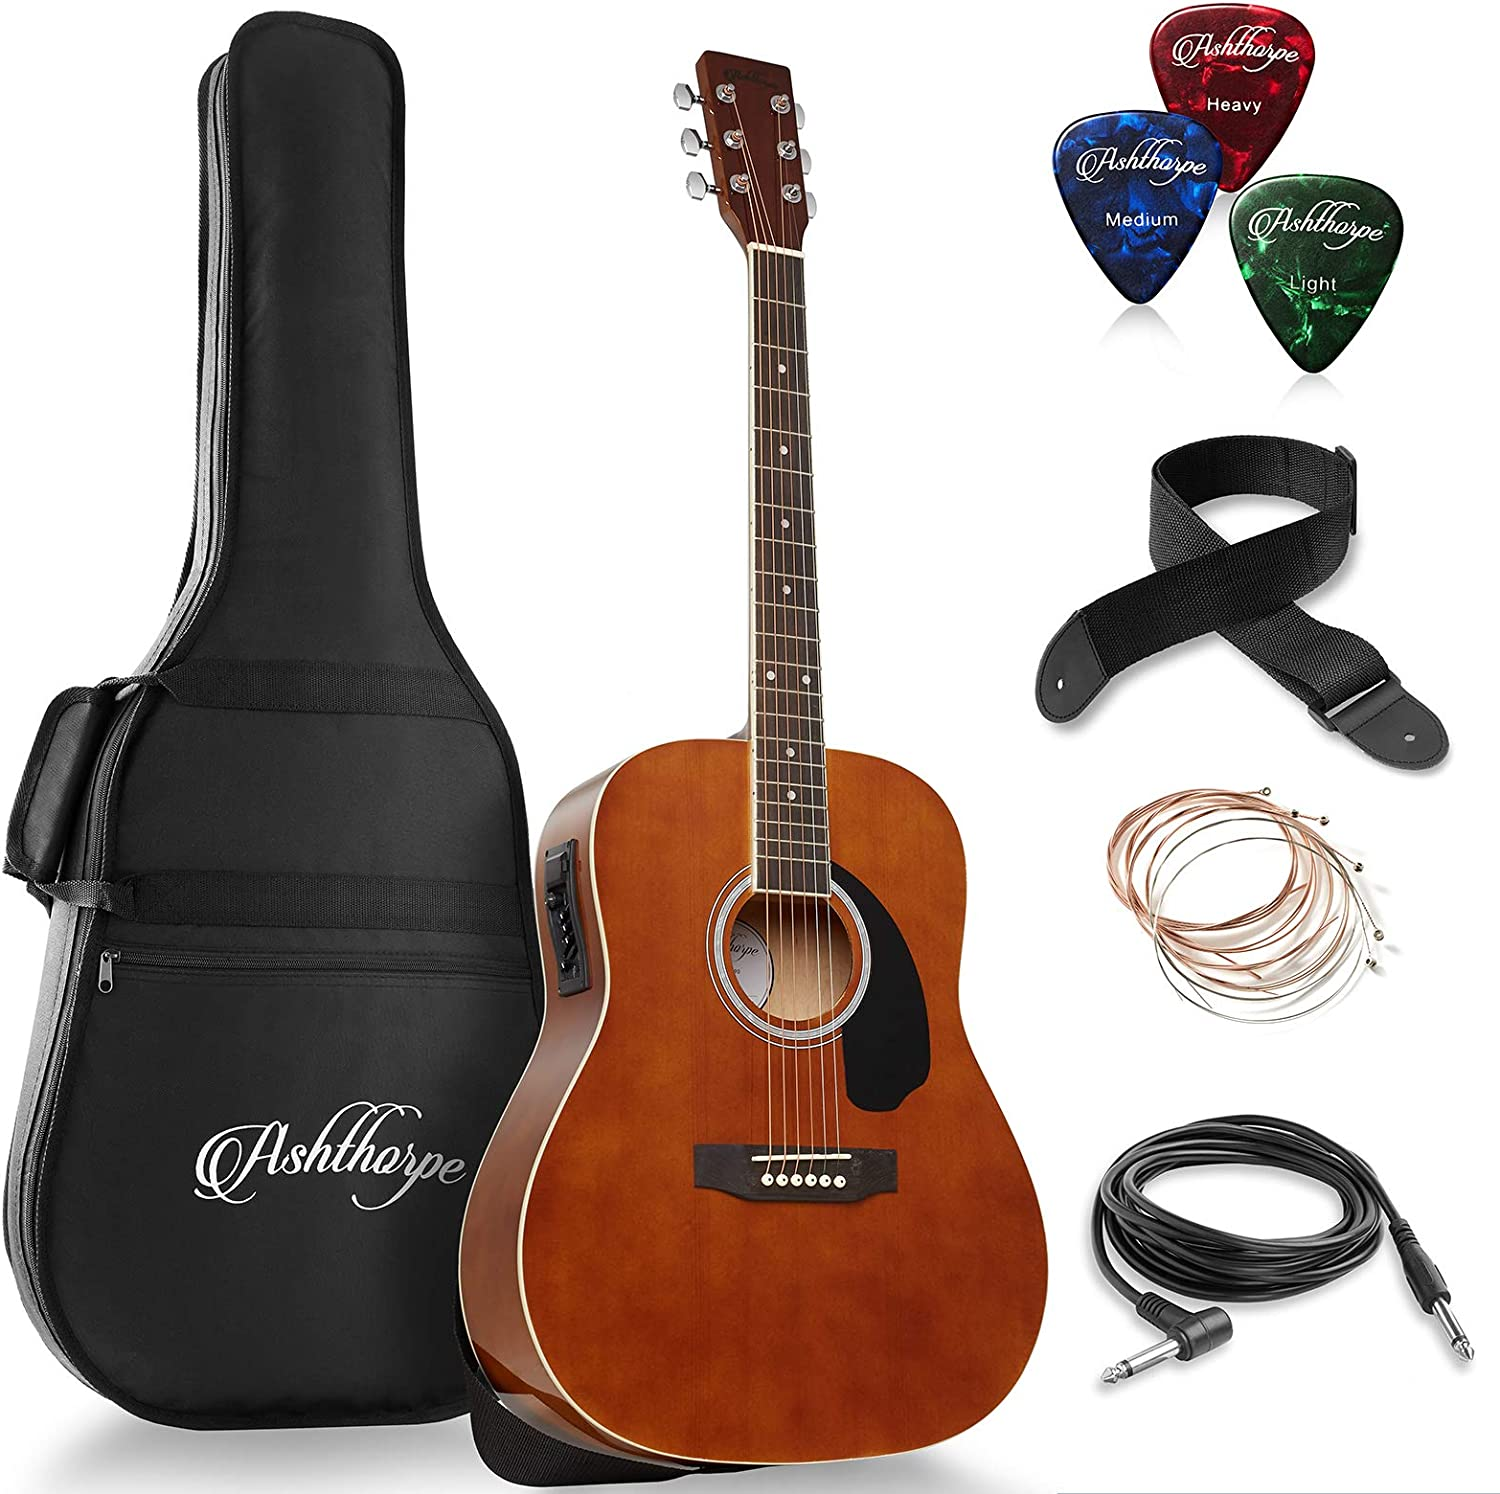 sold out Ashthorpe Max 73% OFF Full-Size Dreadnought Acoustic-Electric Bundle Guitar